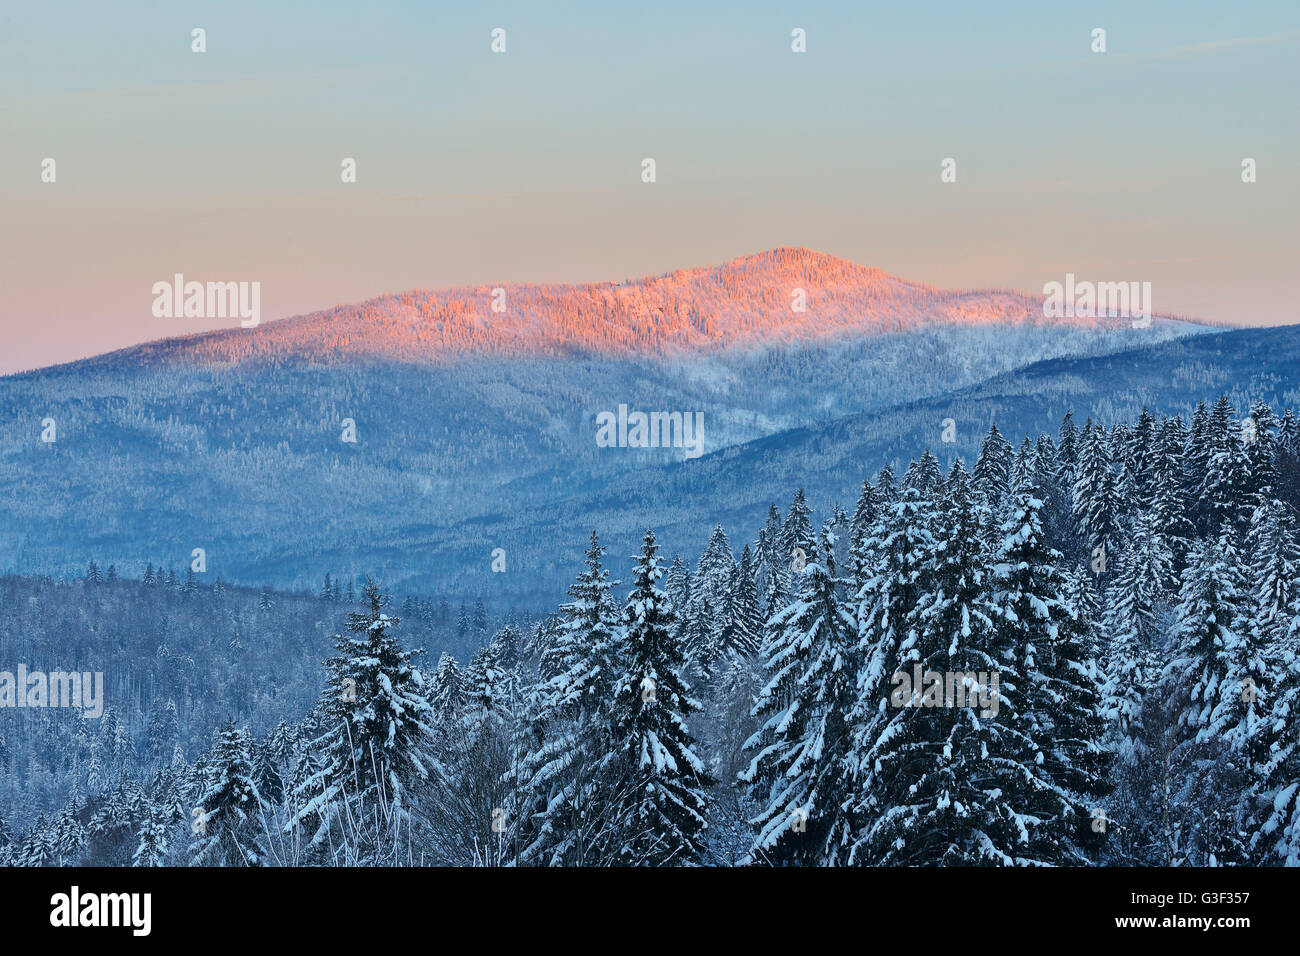 Conifer Forest at Dawn, Winter, Grafenau, Rachel, National Park Bavarian Forest, Bavaria, Germany Stock Photo